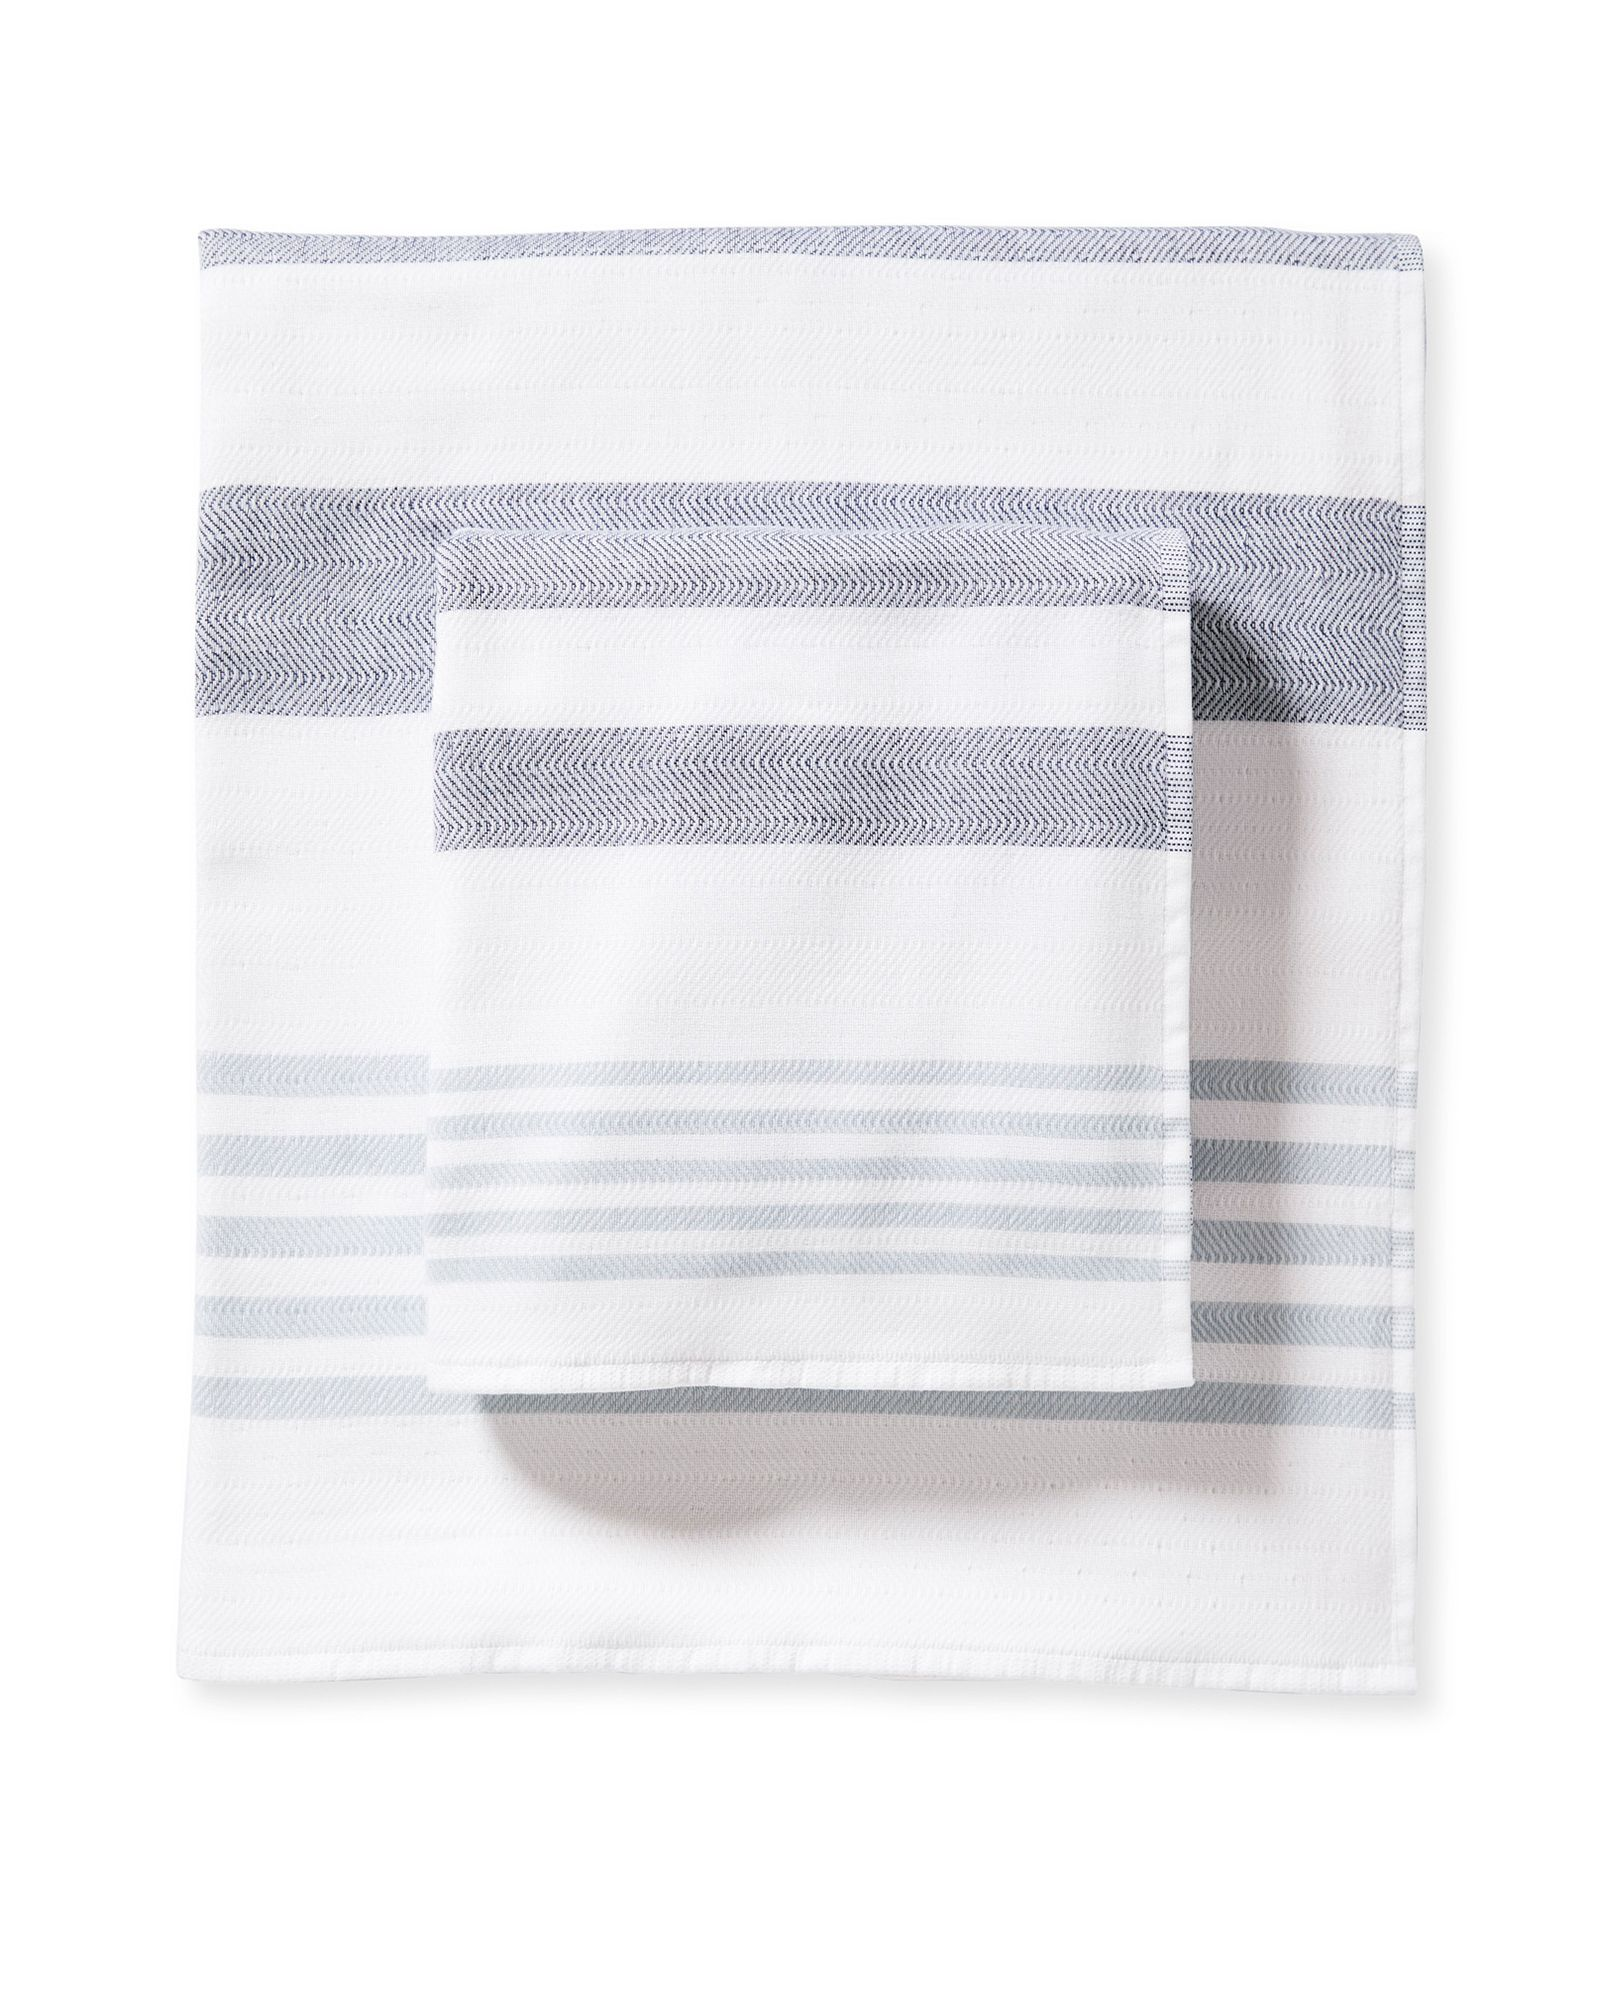 Fouta Bath Collection Navy Coastal Blue Bath Towel Serena Lily Blue Hand Towels Turkish Towels Ribbon On Christmas Tree